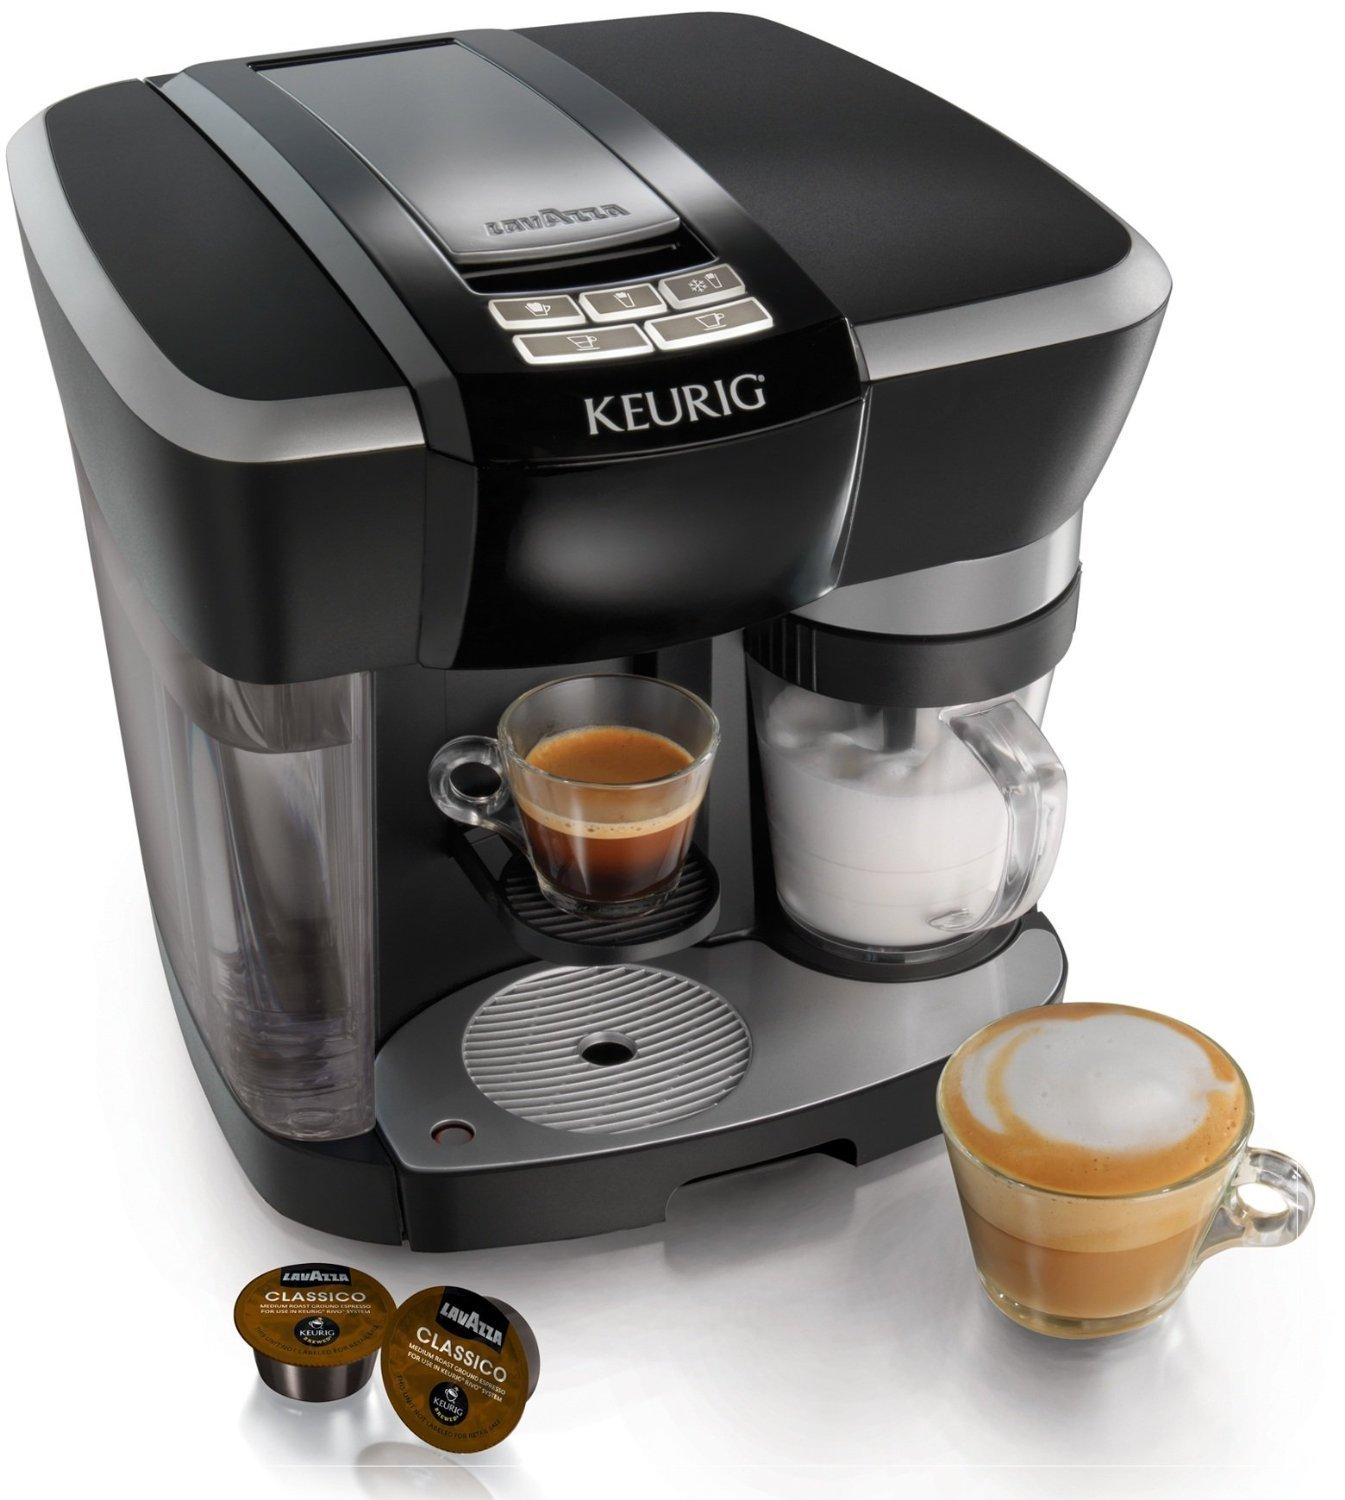 Keurig Rivo R500 Cappuccino and Latte Brewing System